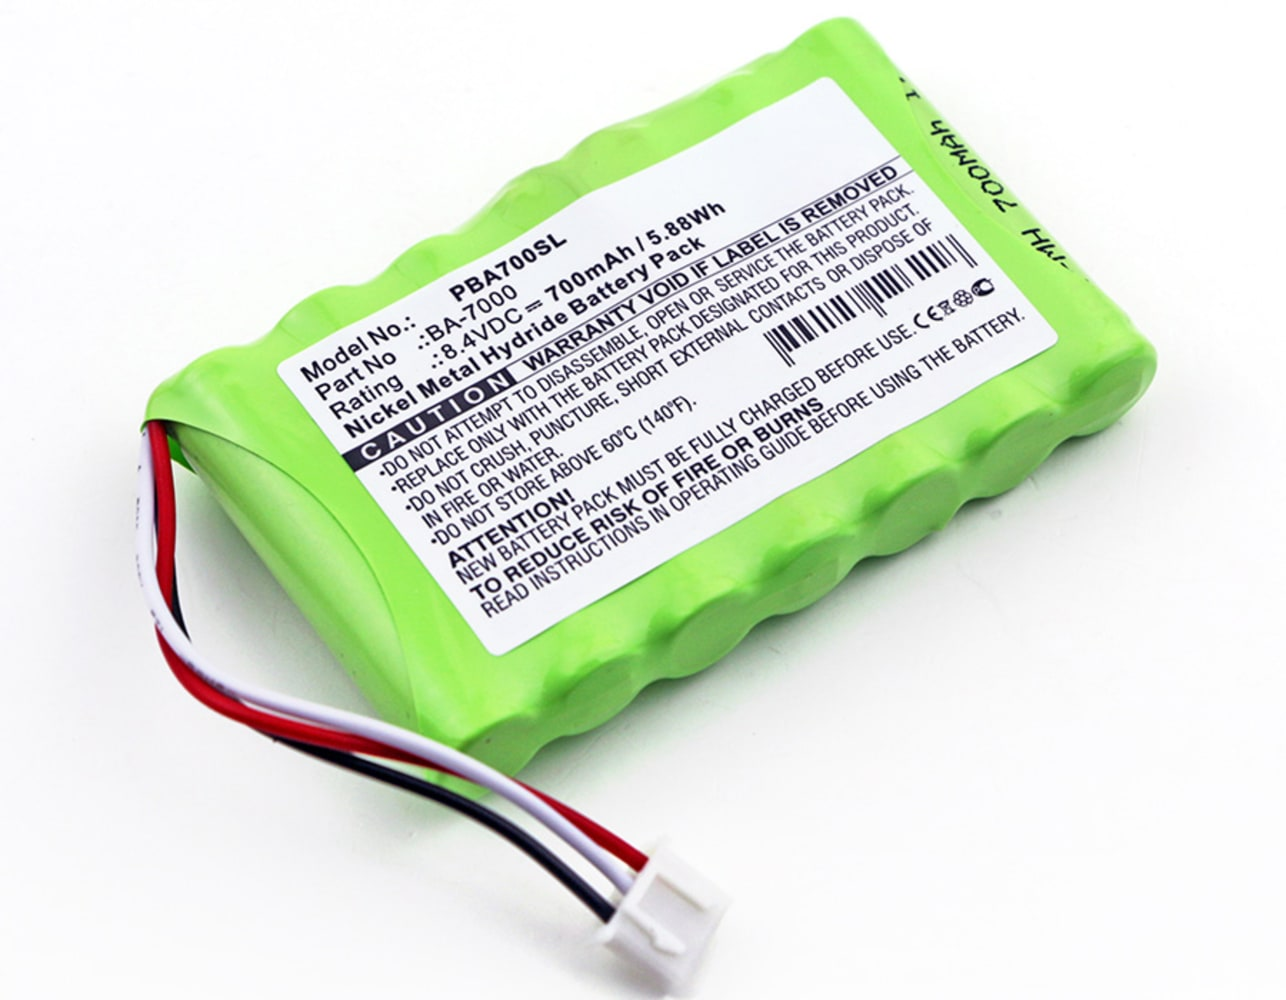 Batterie pour Brother P-Touch 7600VP, Brother PT 7600VP - BA-7000 700mAh